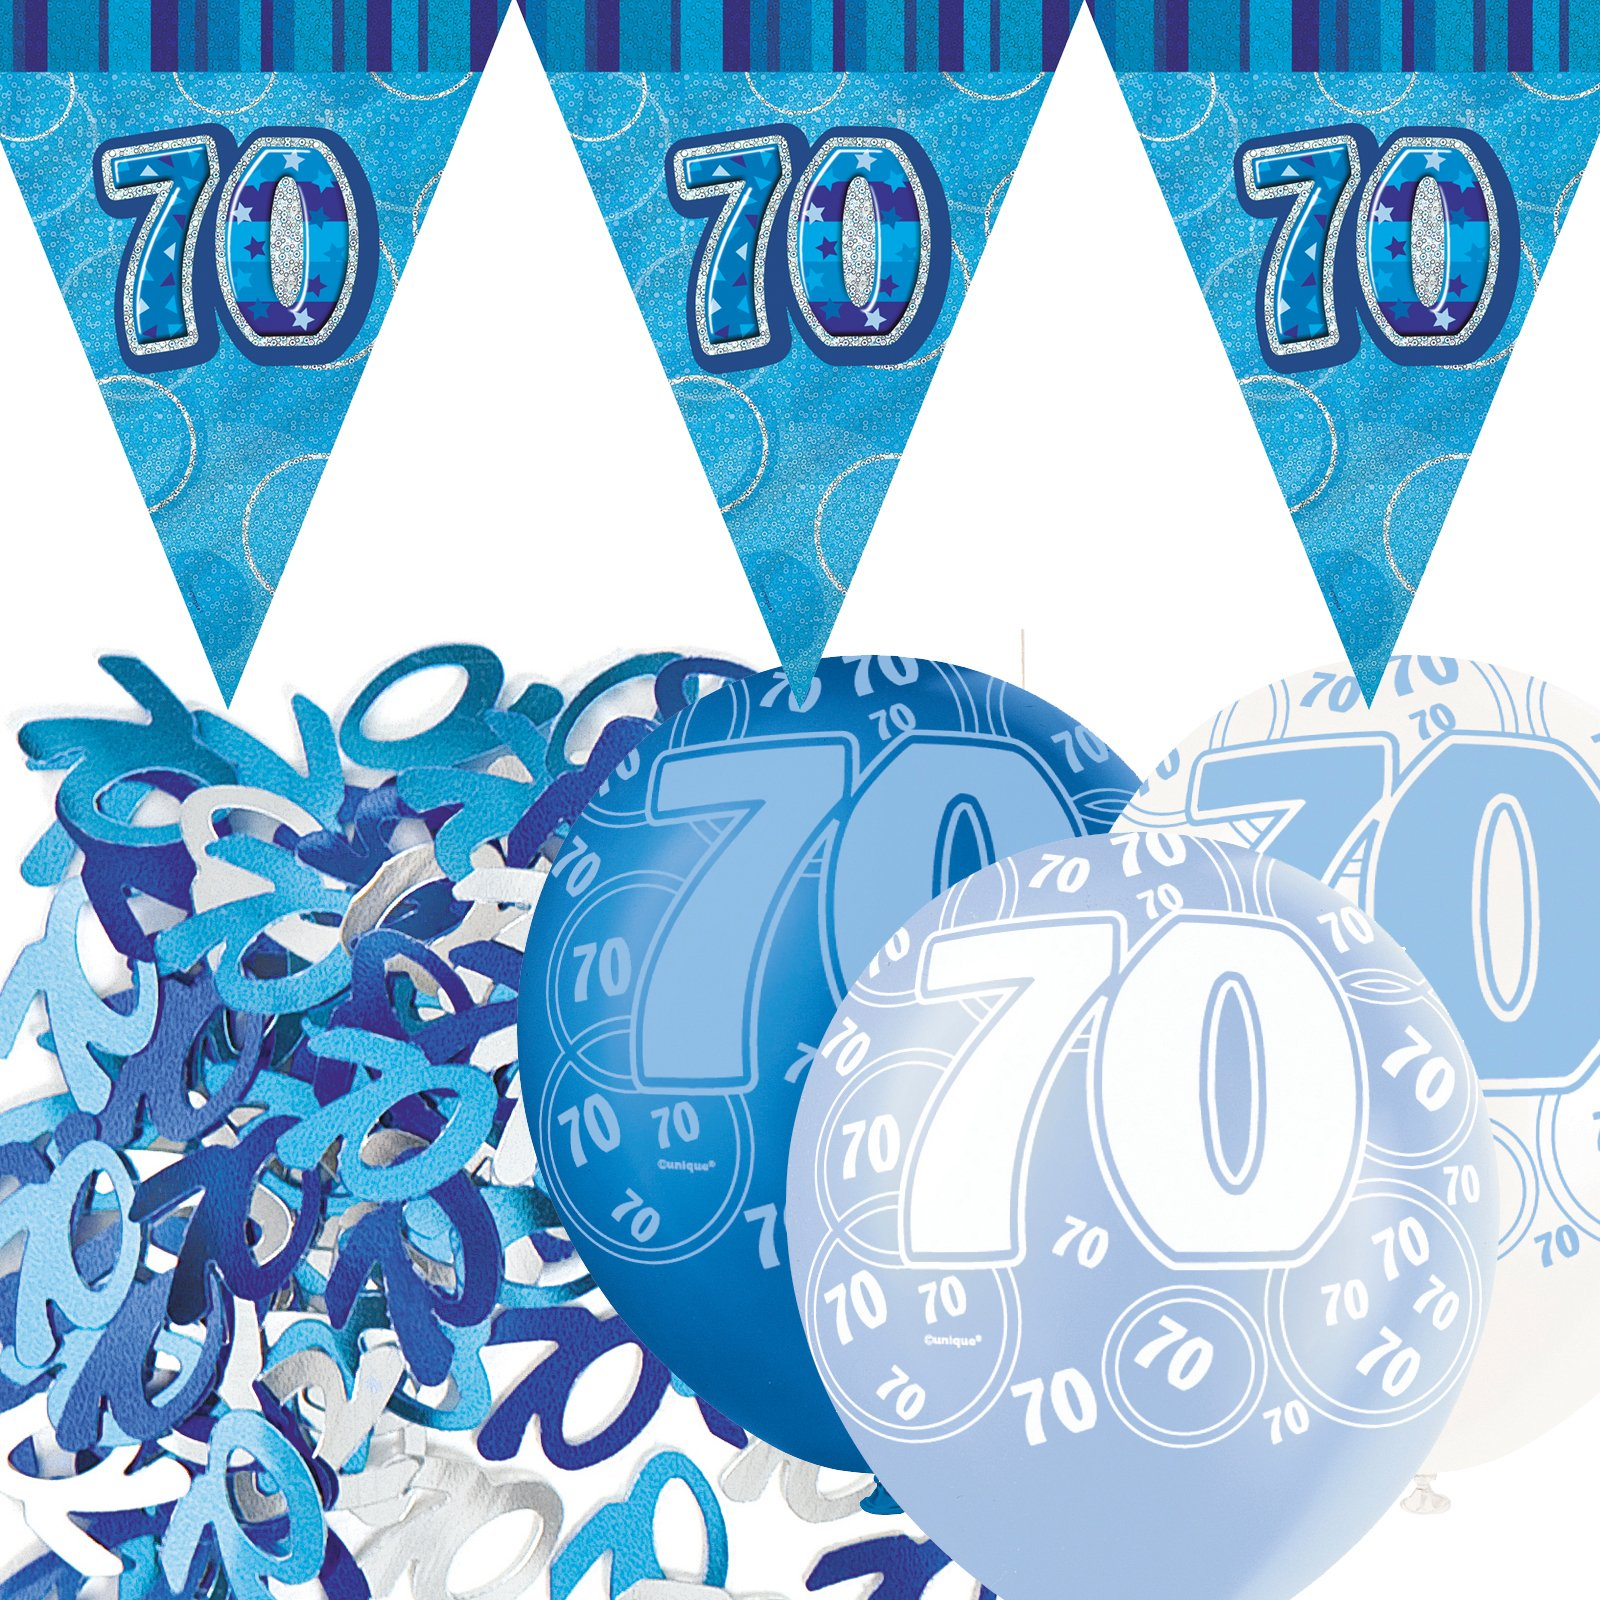 70th Party Decorations: Amazon.co.uk